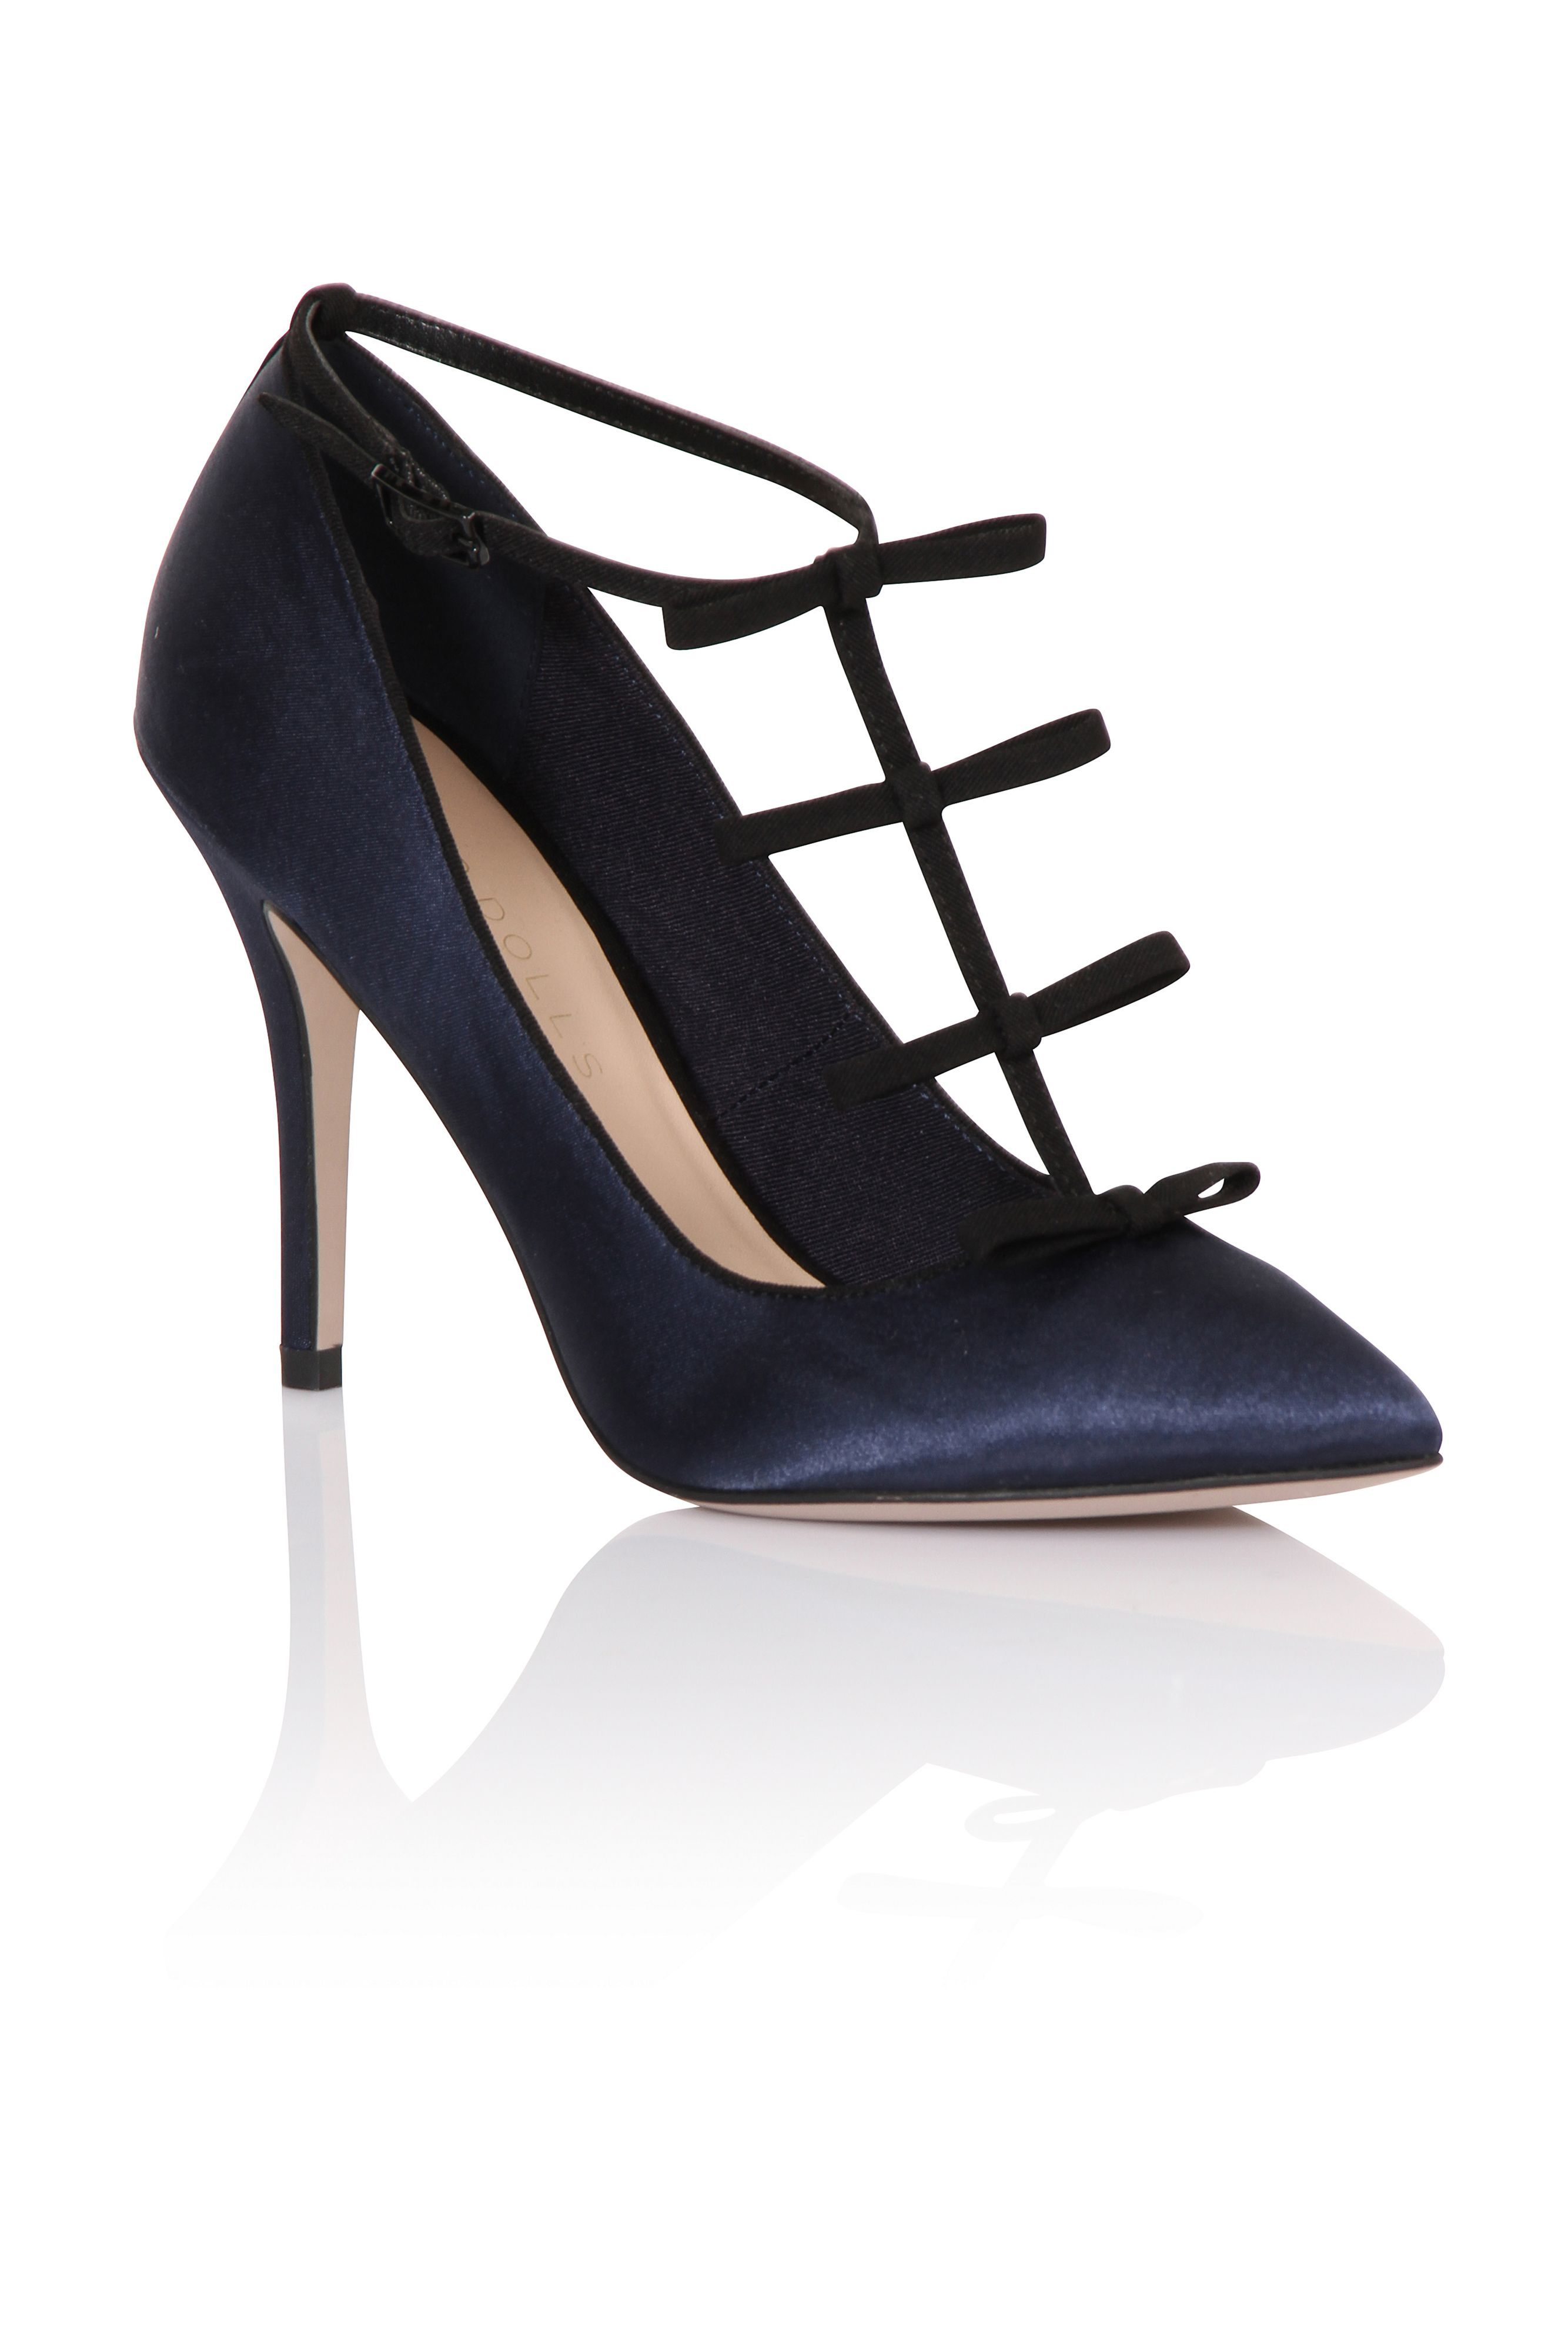 Paper Dolls Paper Dolls Multi bow court shoes, Navy